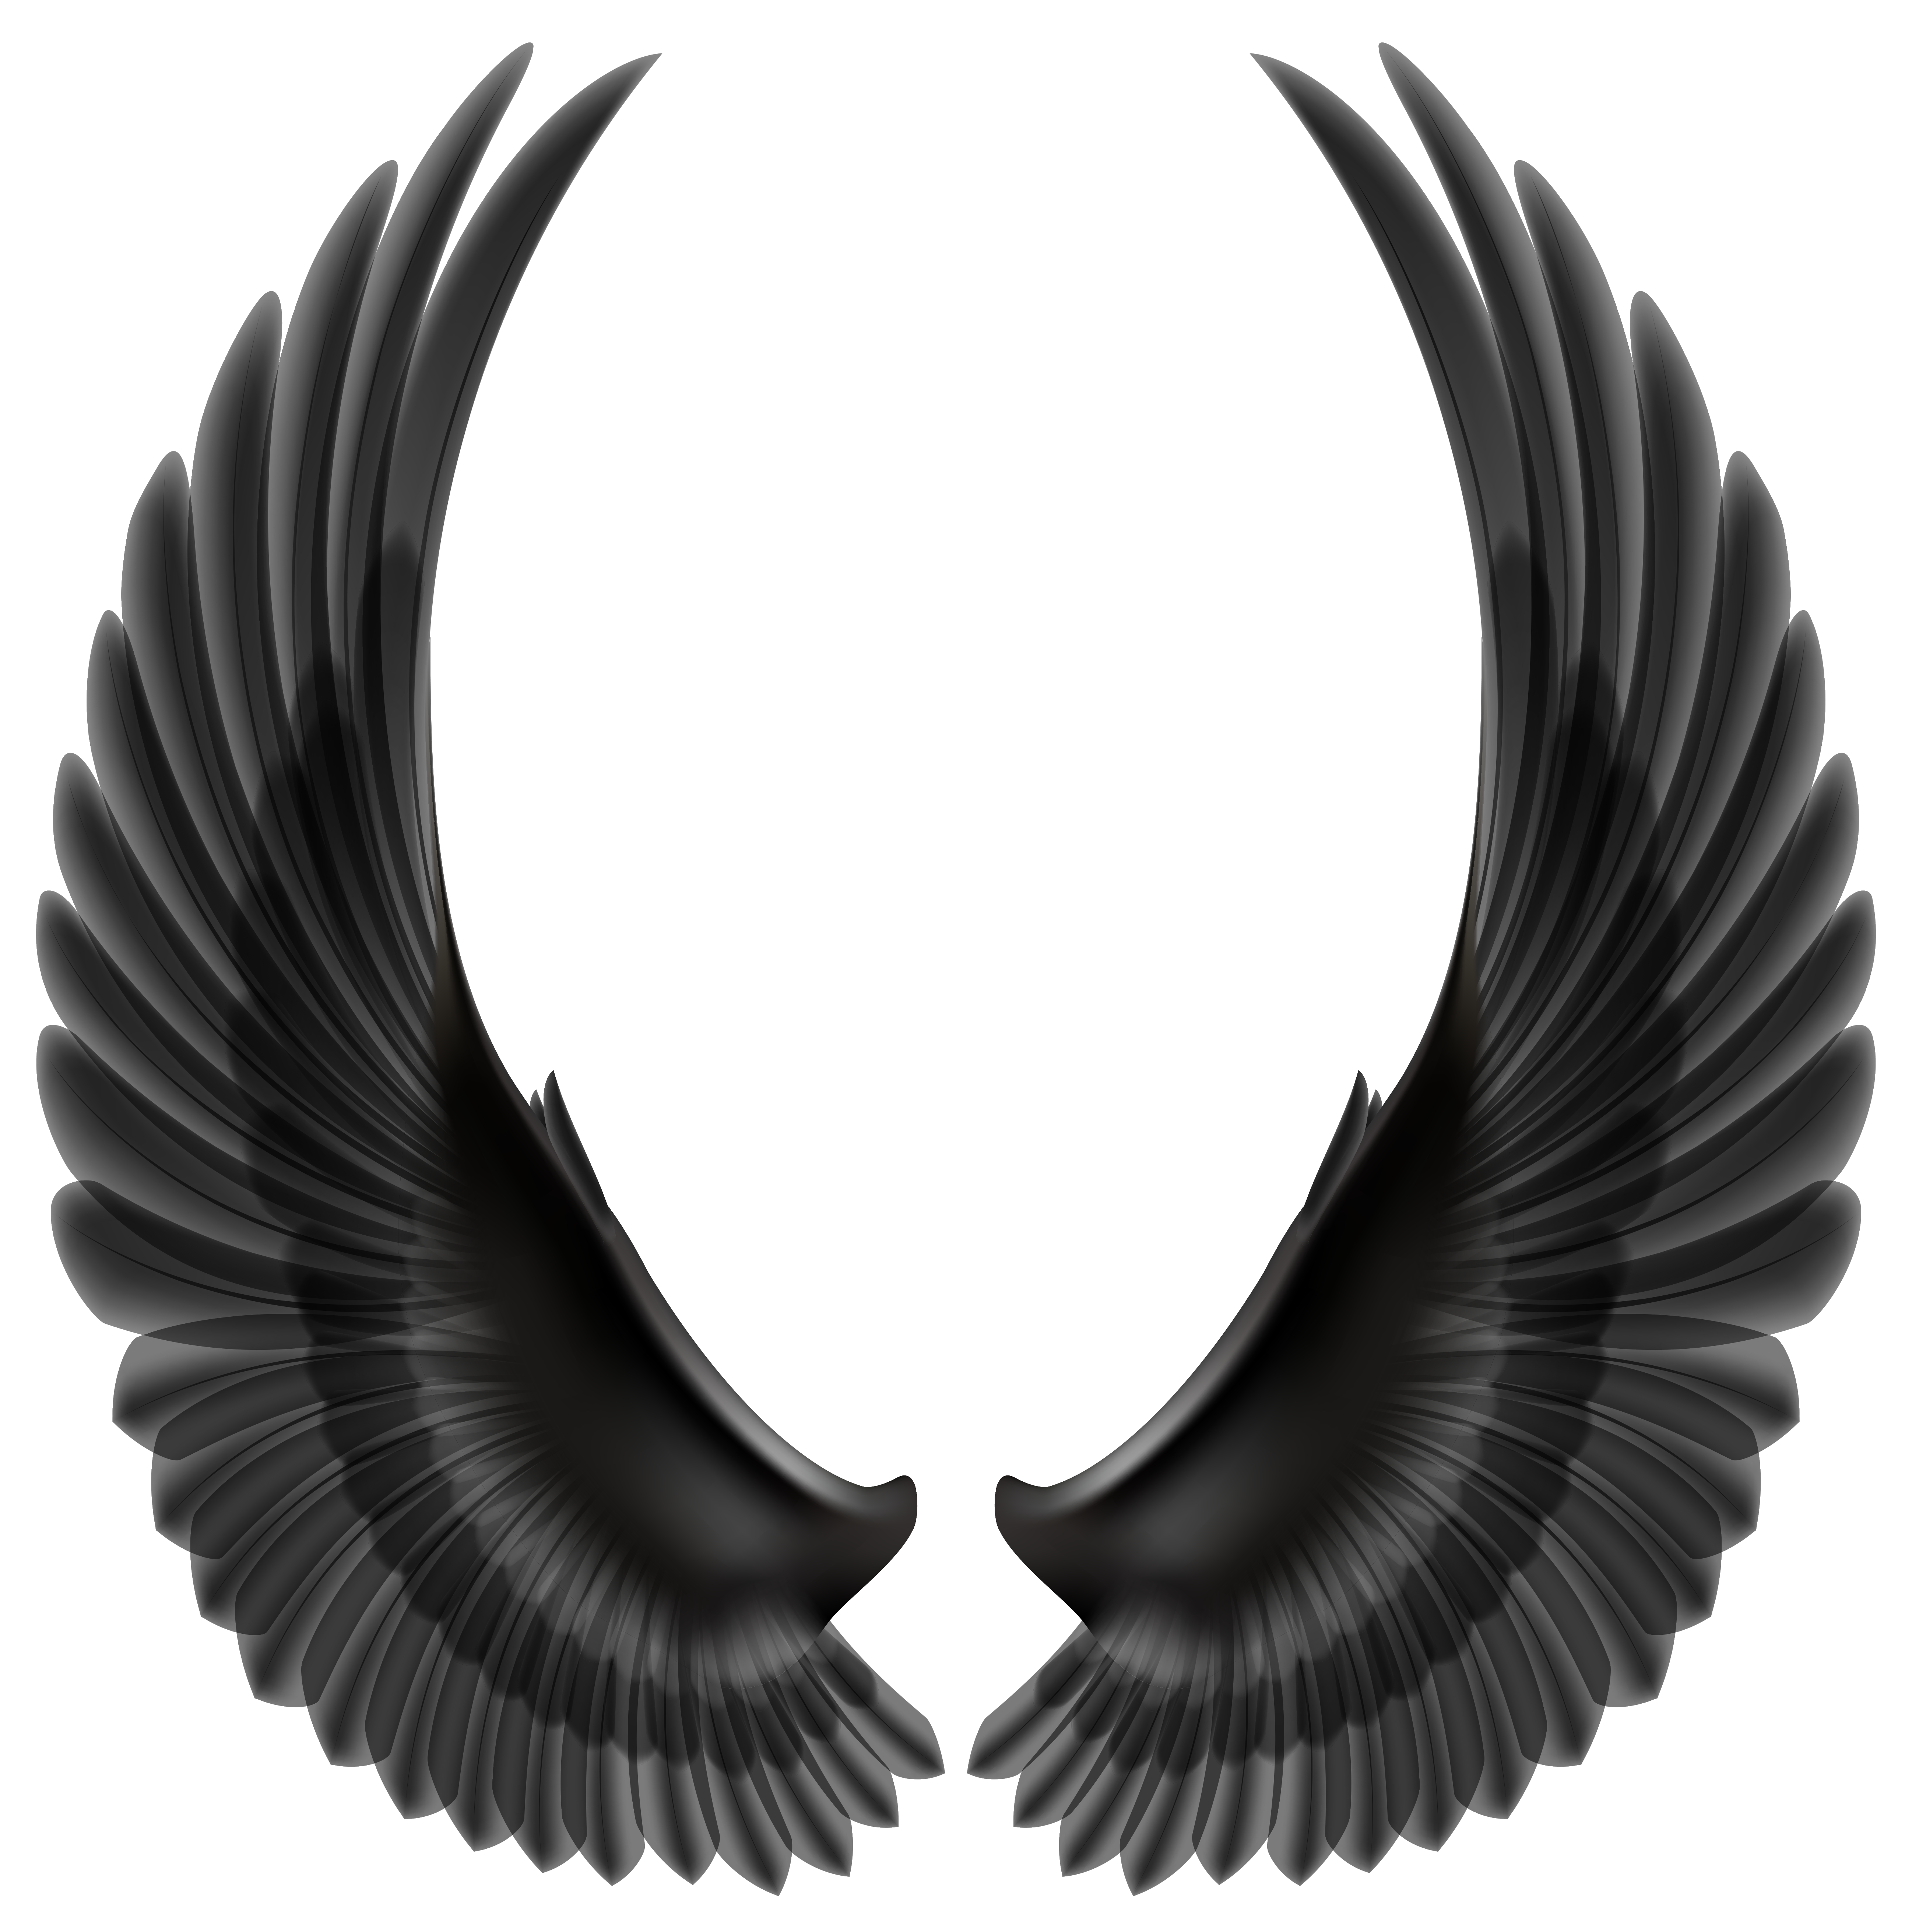 Black wings clipart clipart library Black Wings PNG Clip Art Image | Gallery Yopriceville - High ... clipart library